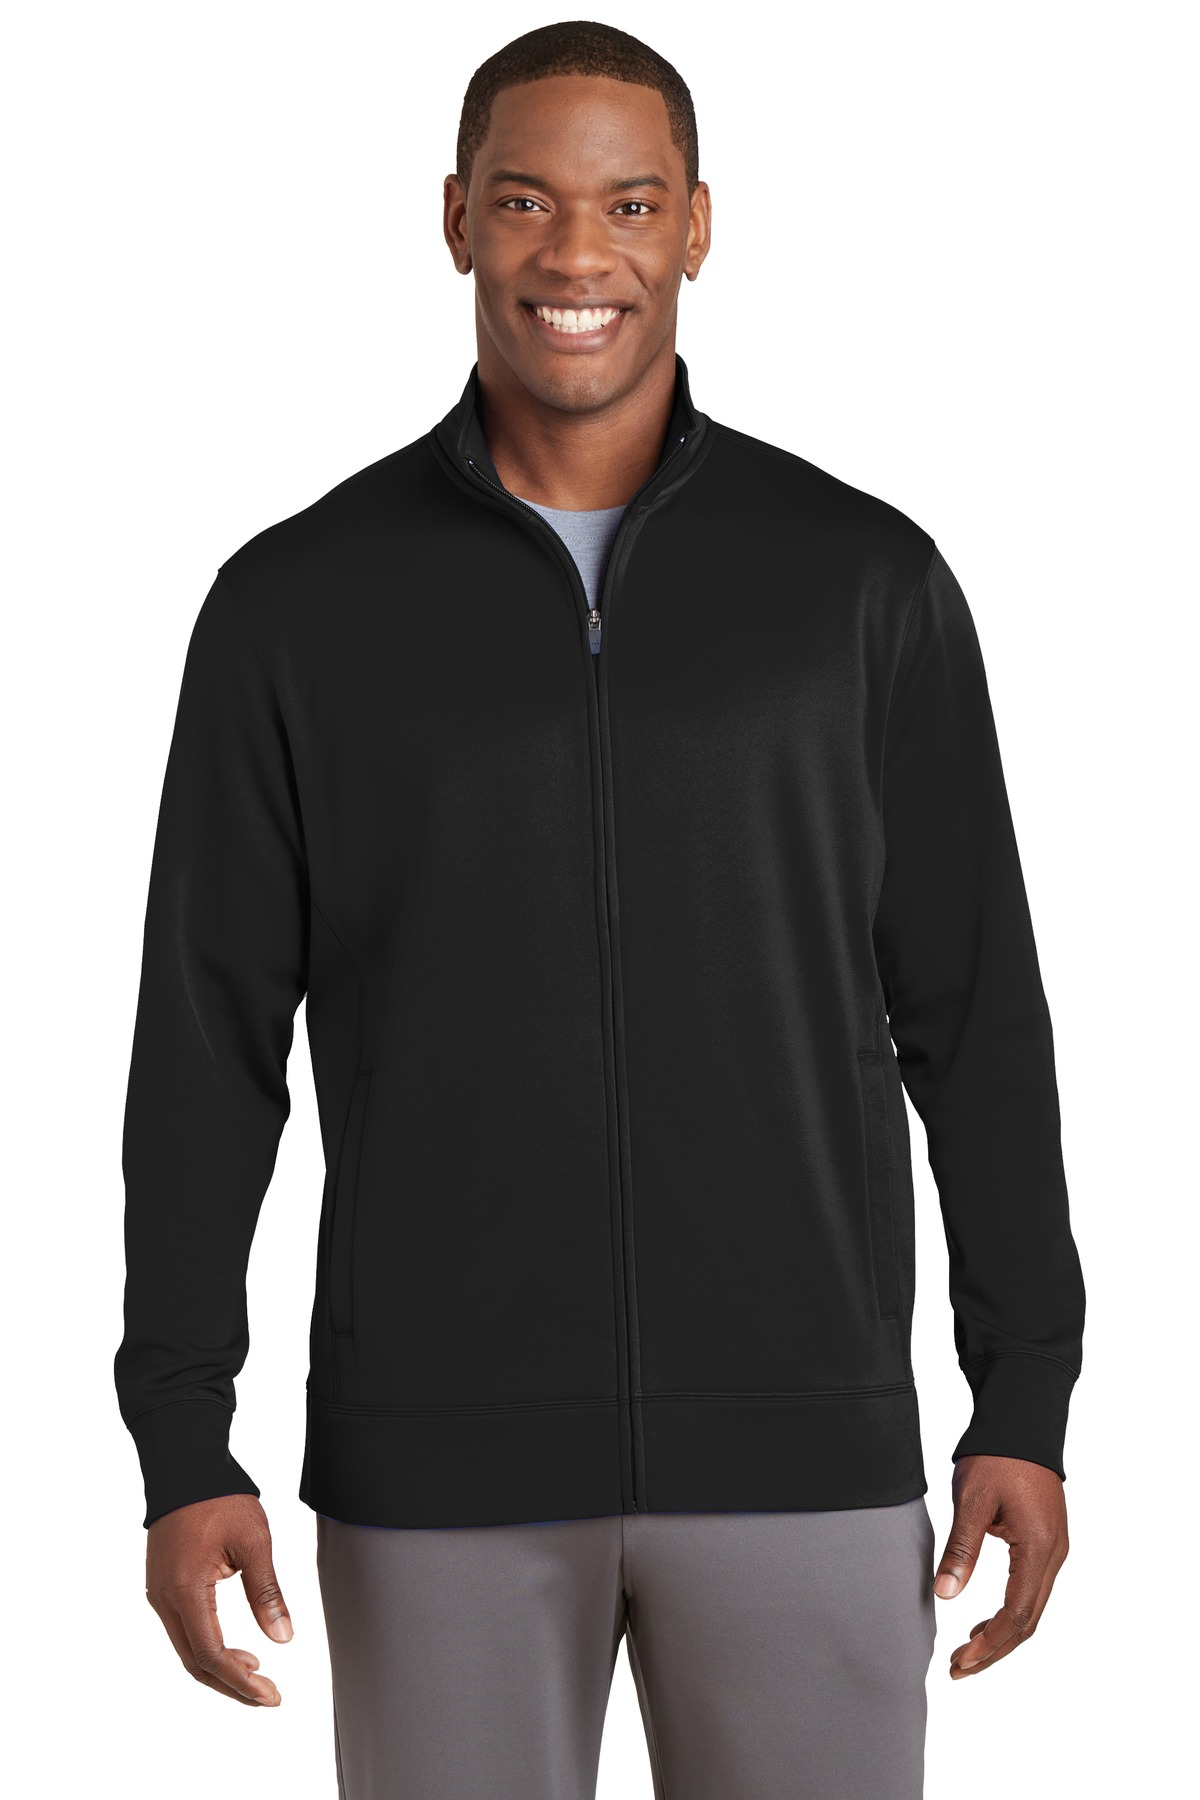 Sport-Tek ®  Sport-Wick ®  Fleece Full-Zip Jacket.  ST241 - Black